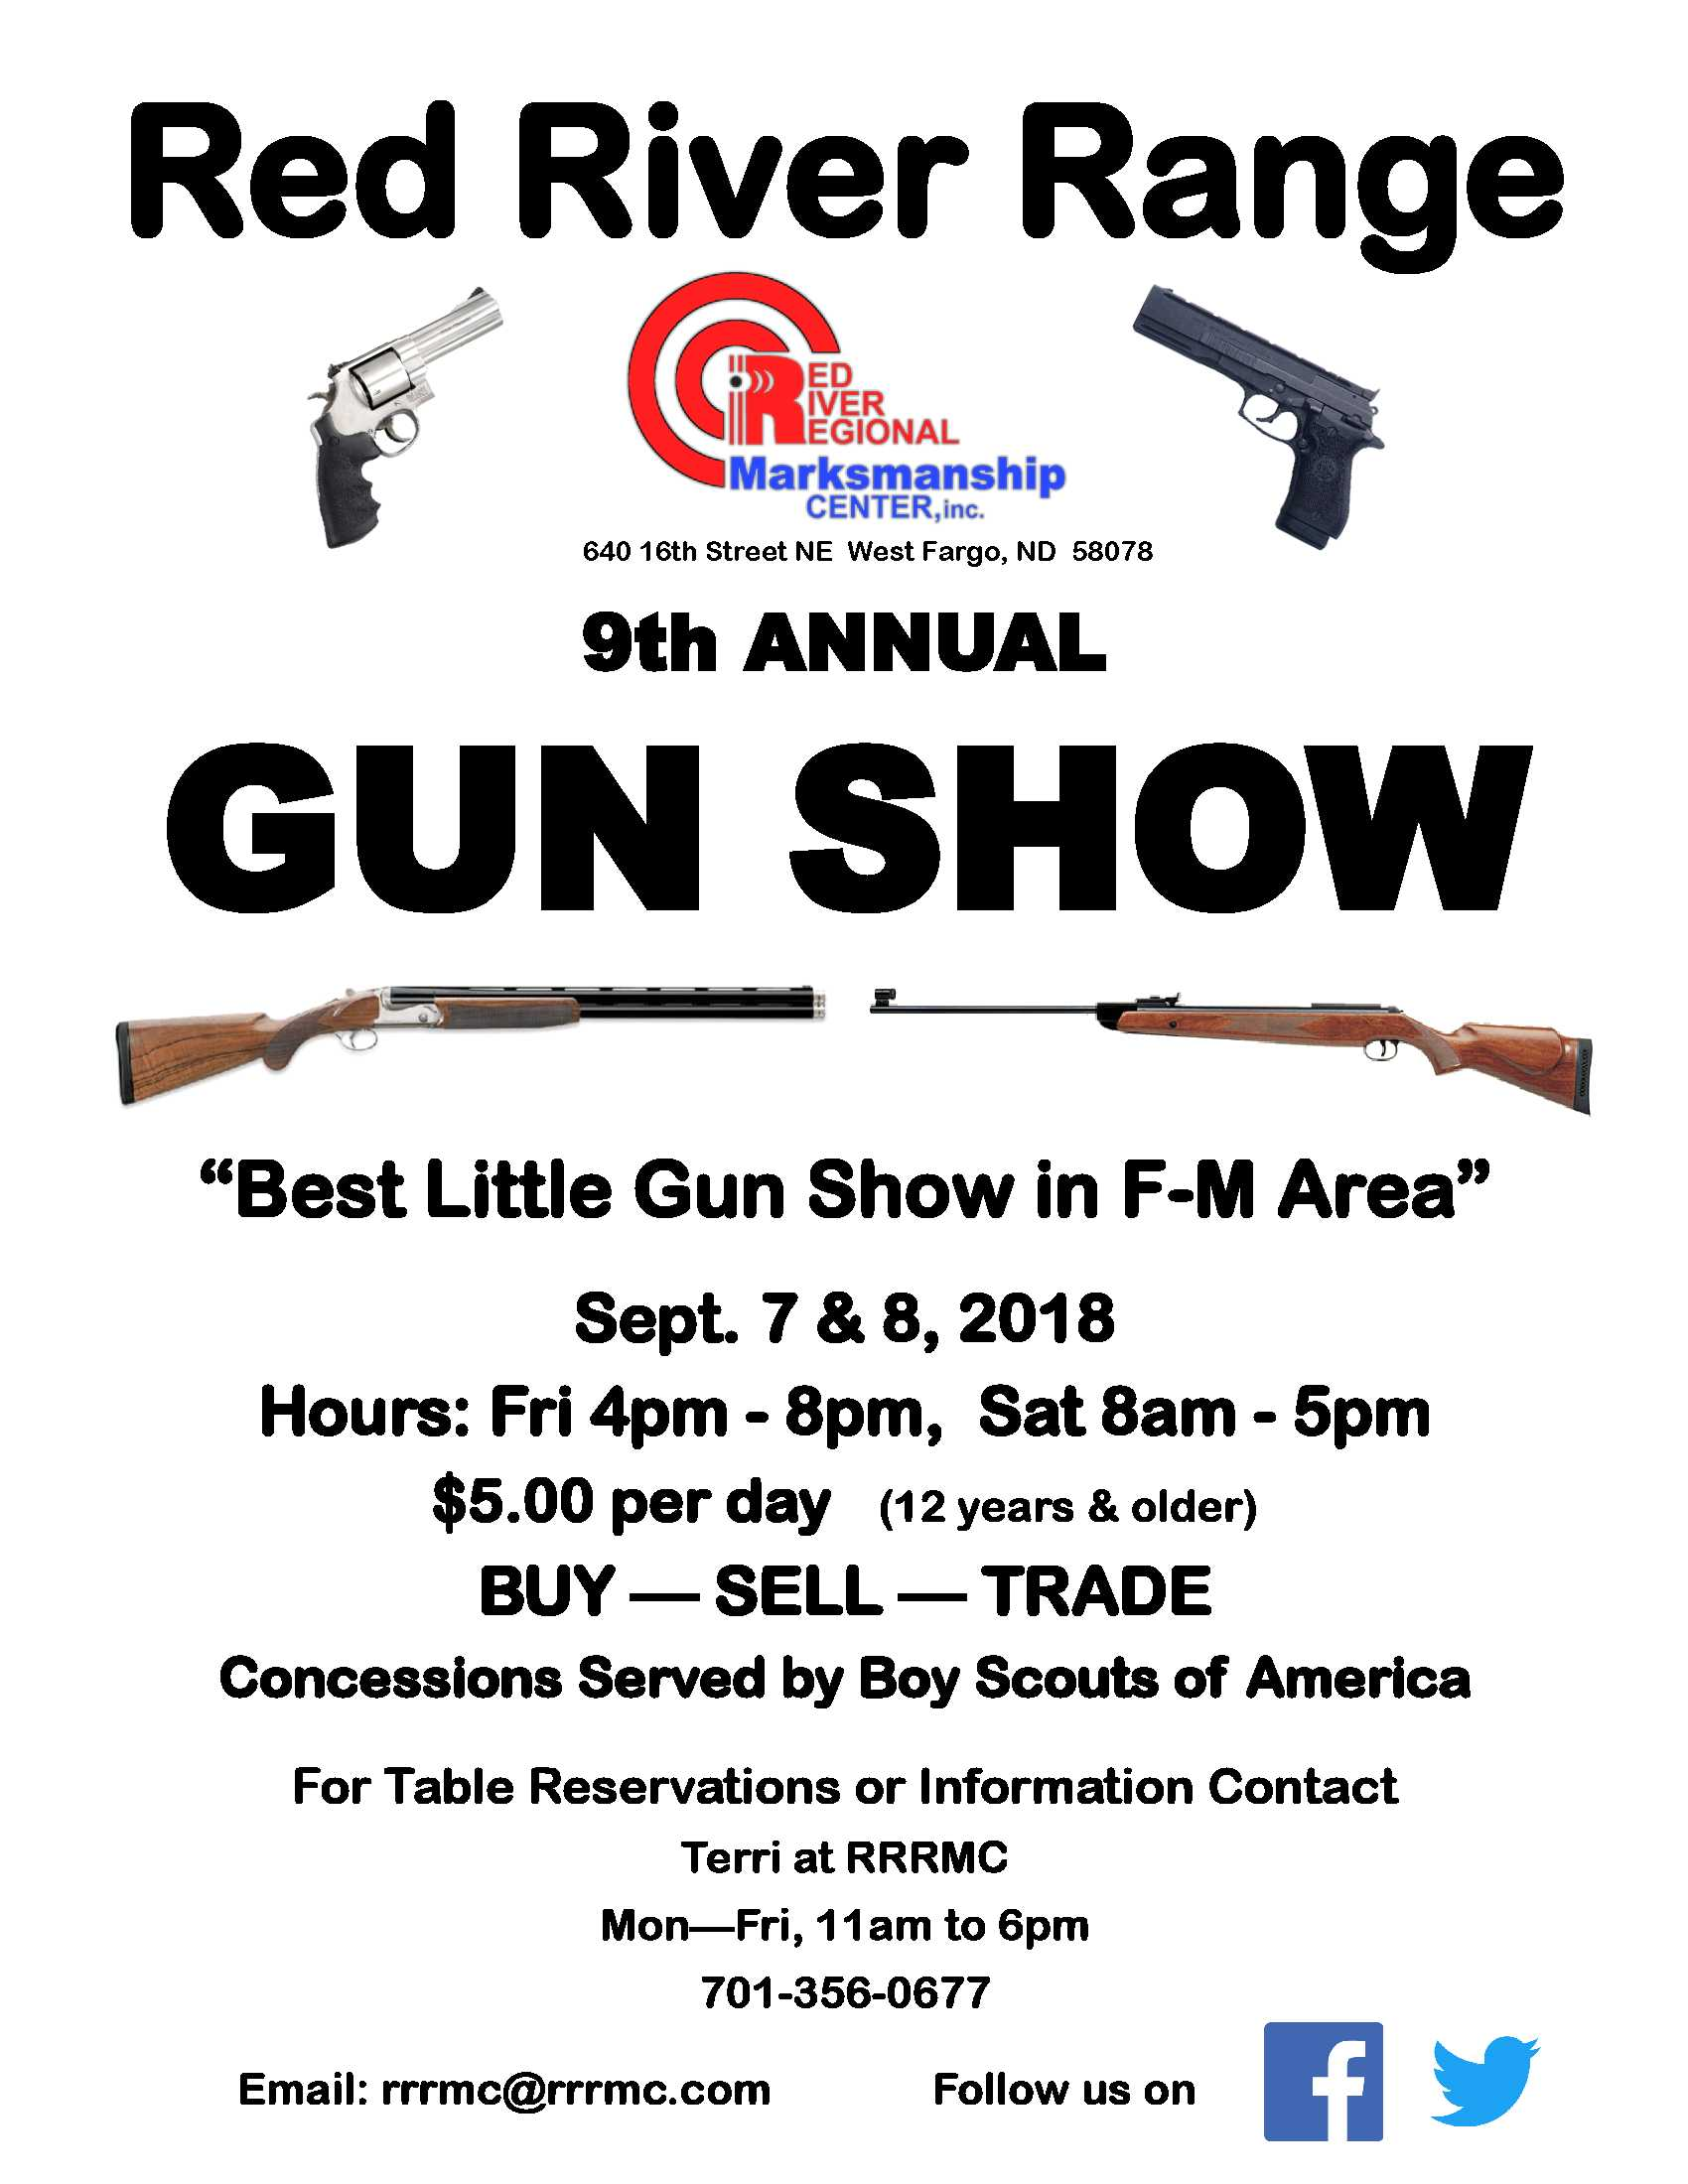 RRRMC 9th Annual Gun Show